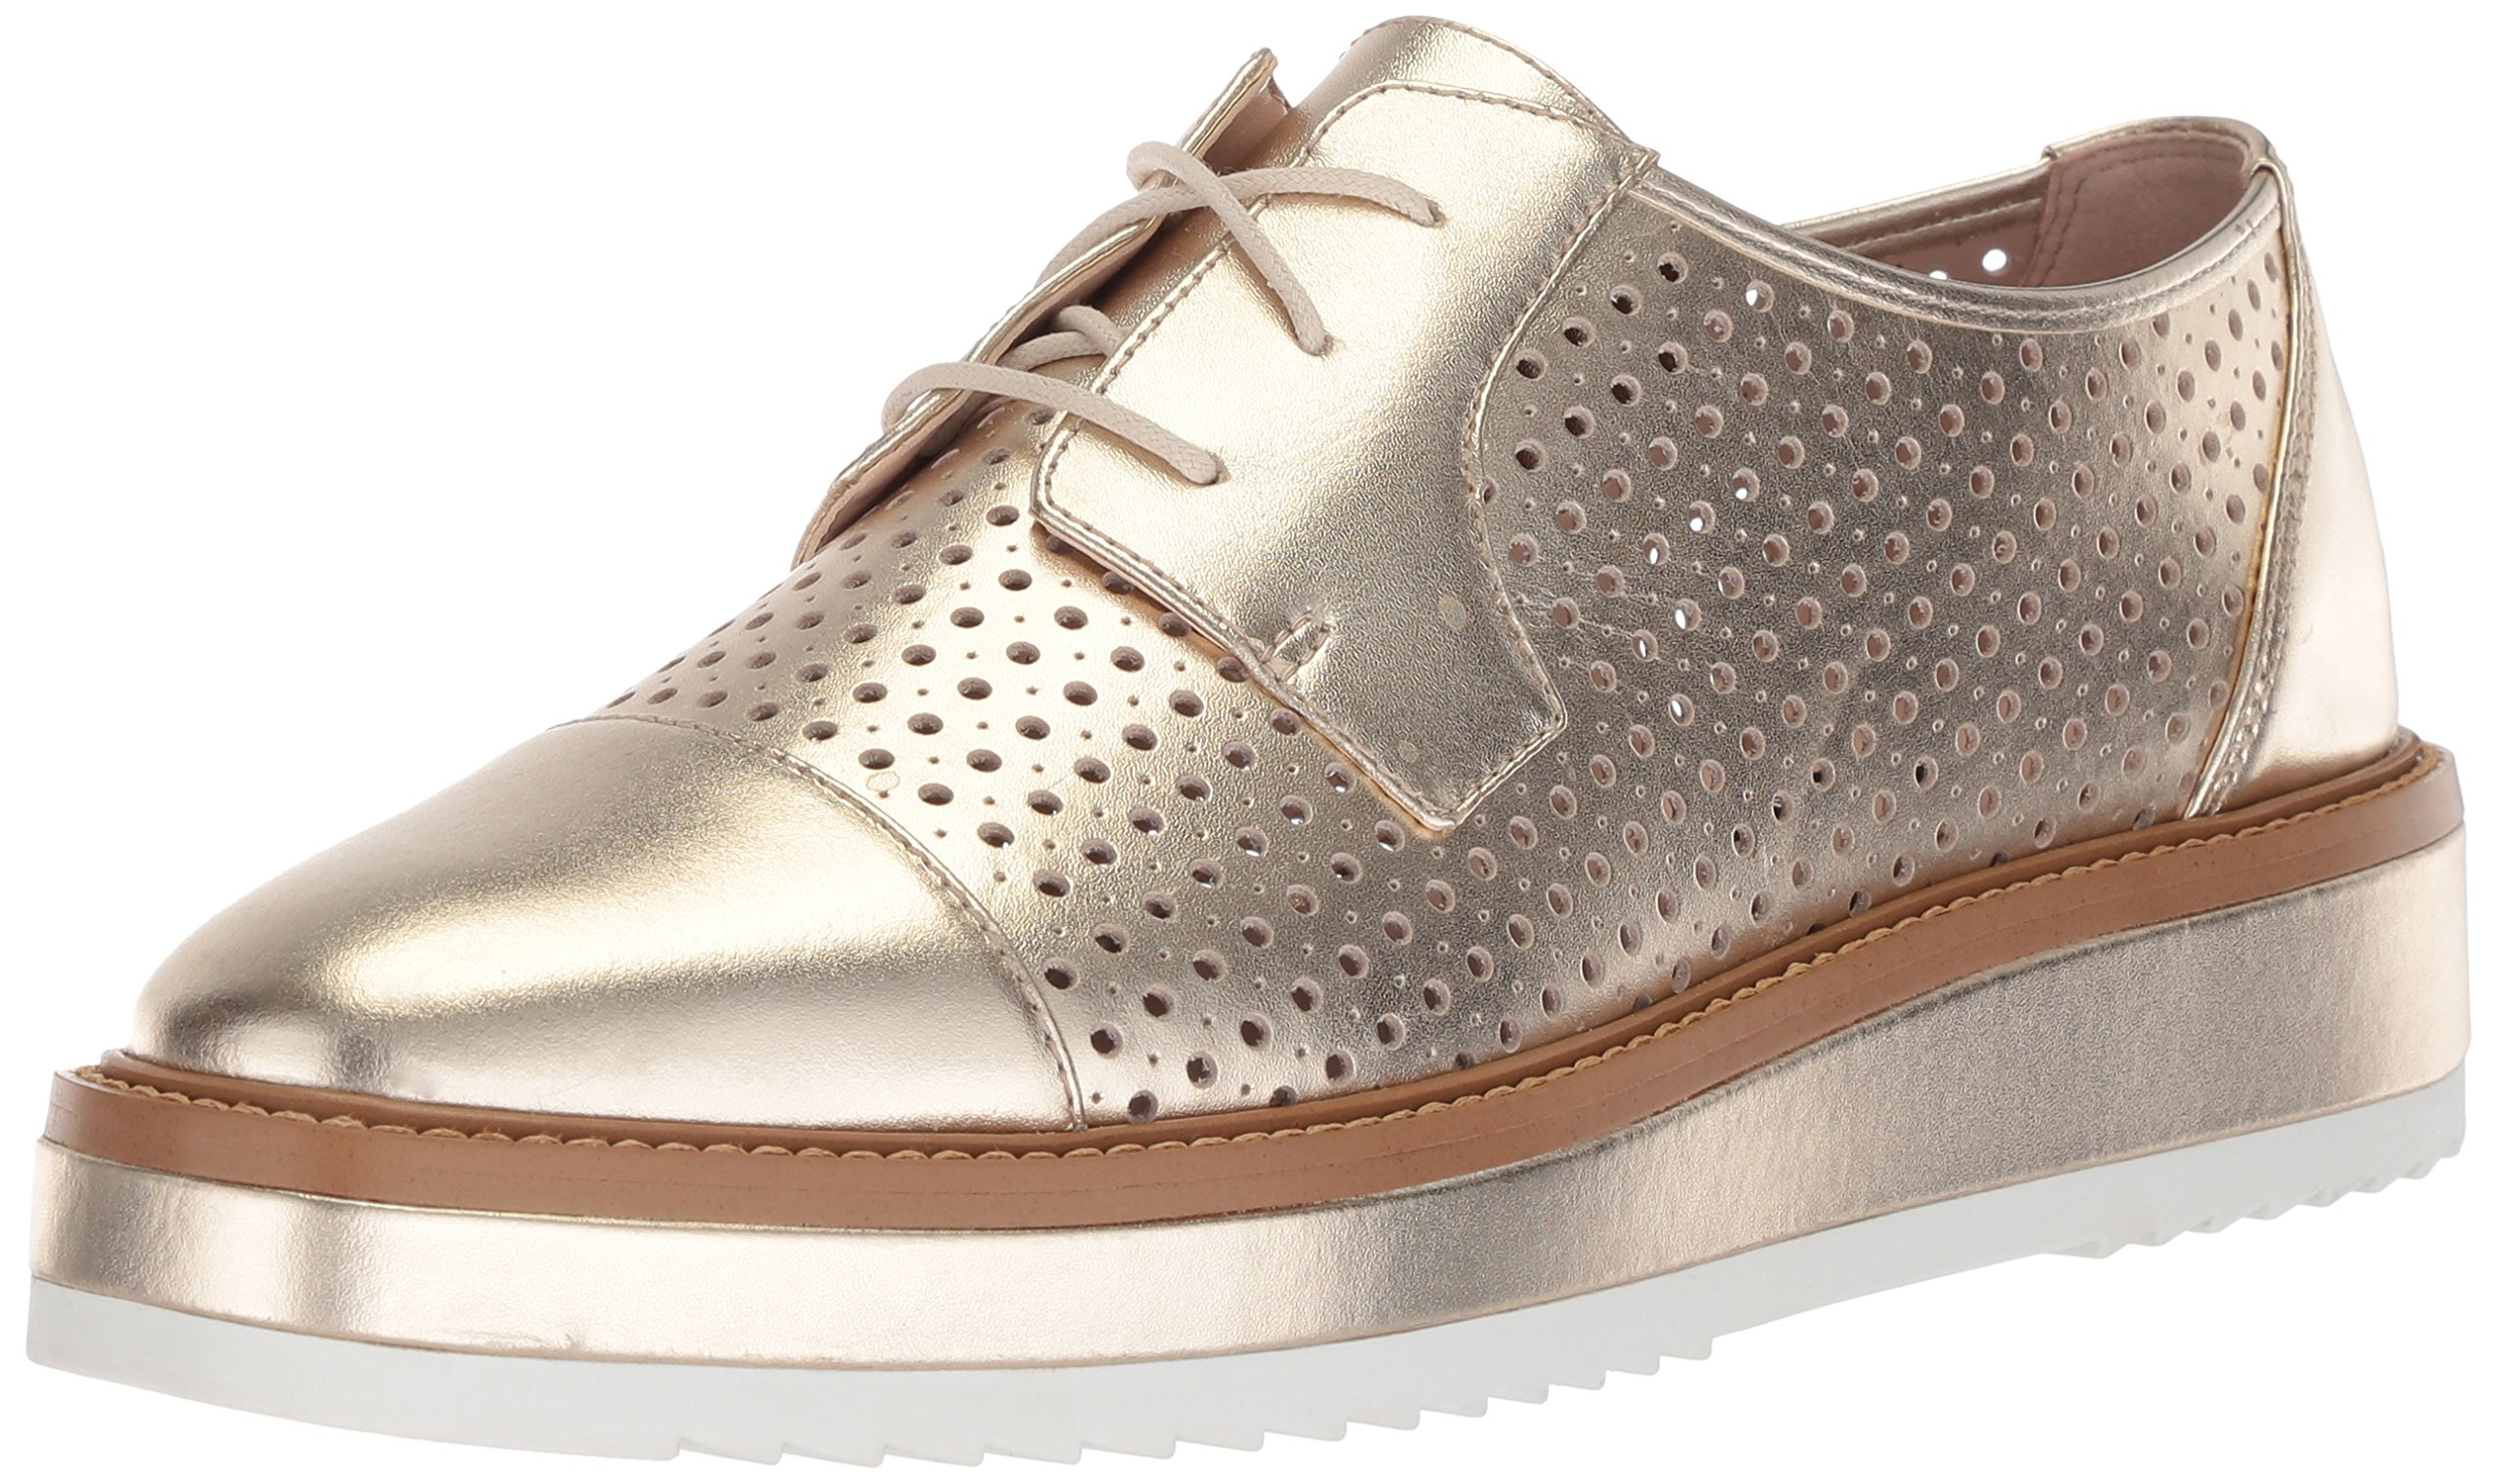 Nine West Women's Verwin Metallic Oxford Flat, Light Gold/Metallic, 6 Medium US